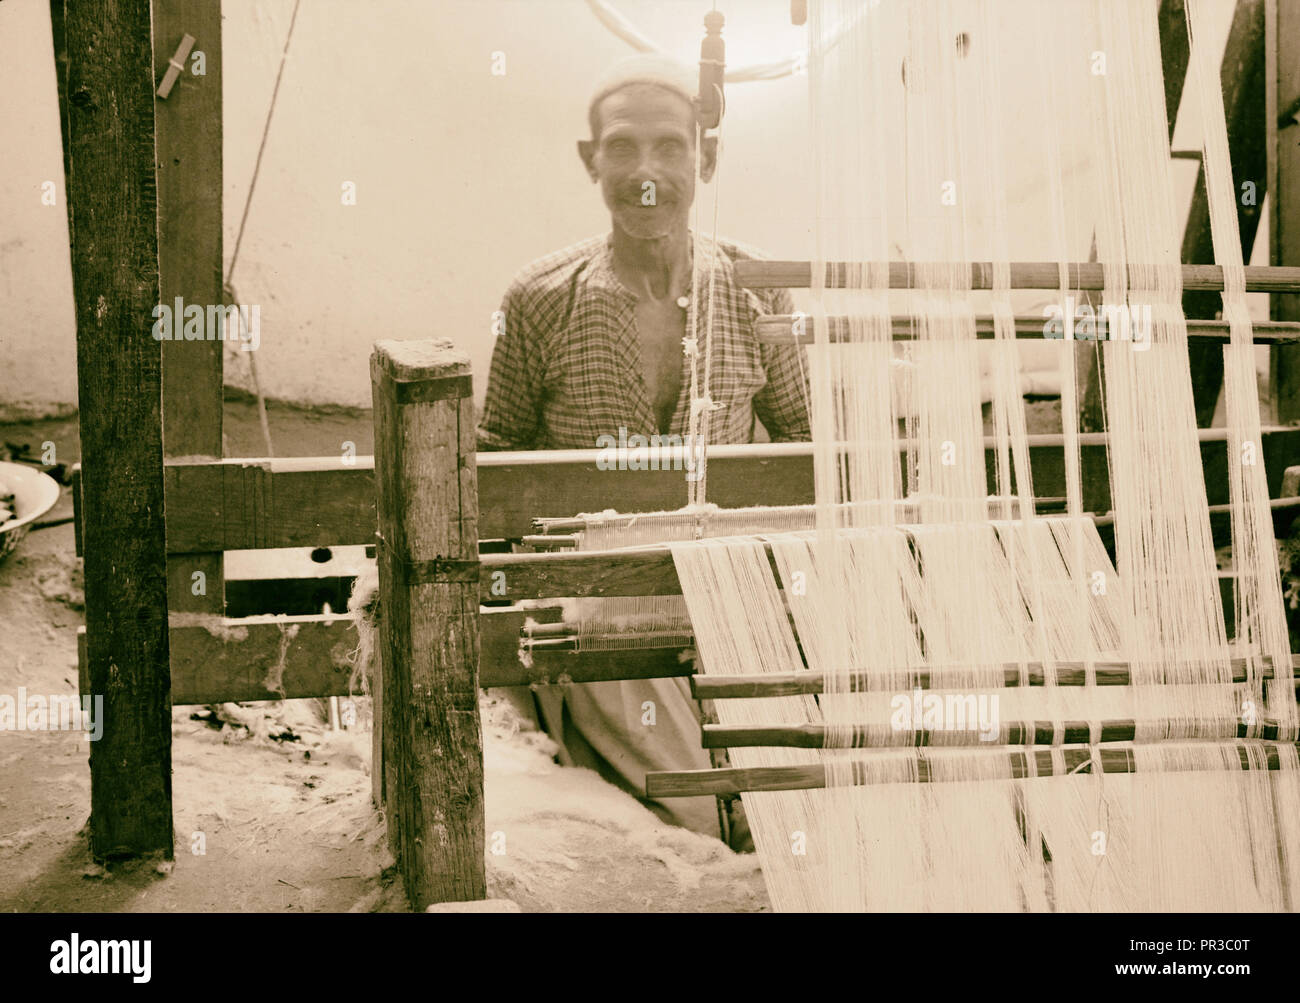 Majdel village & its primitive weaving. A native weaving establishment, closer. Photograph shows a man working at a loom - Stock Image